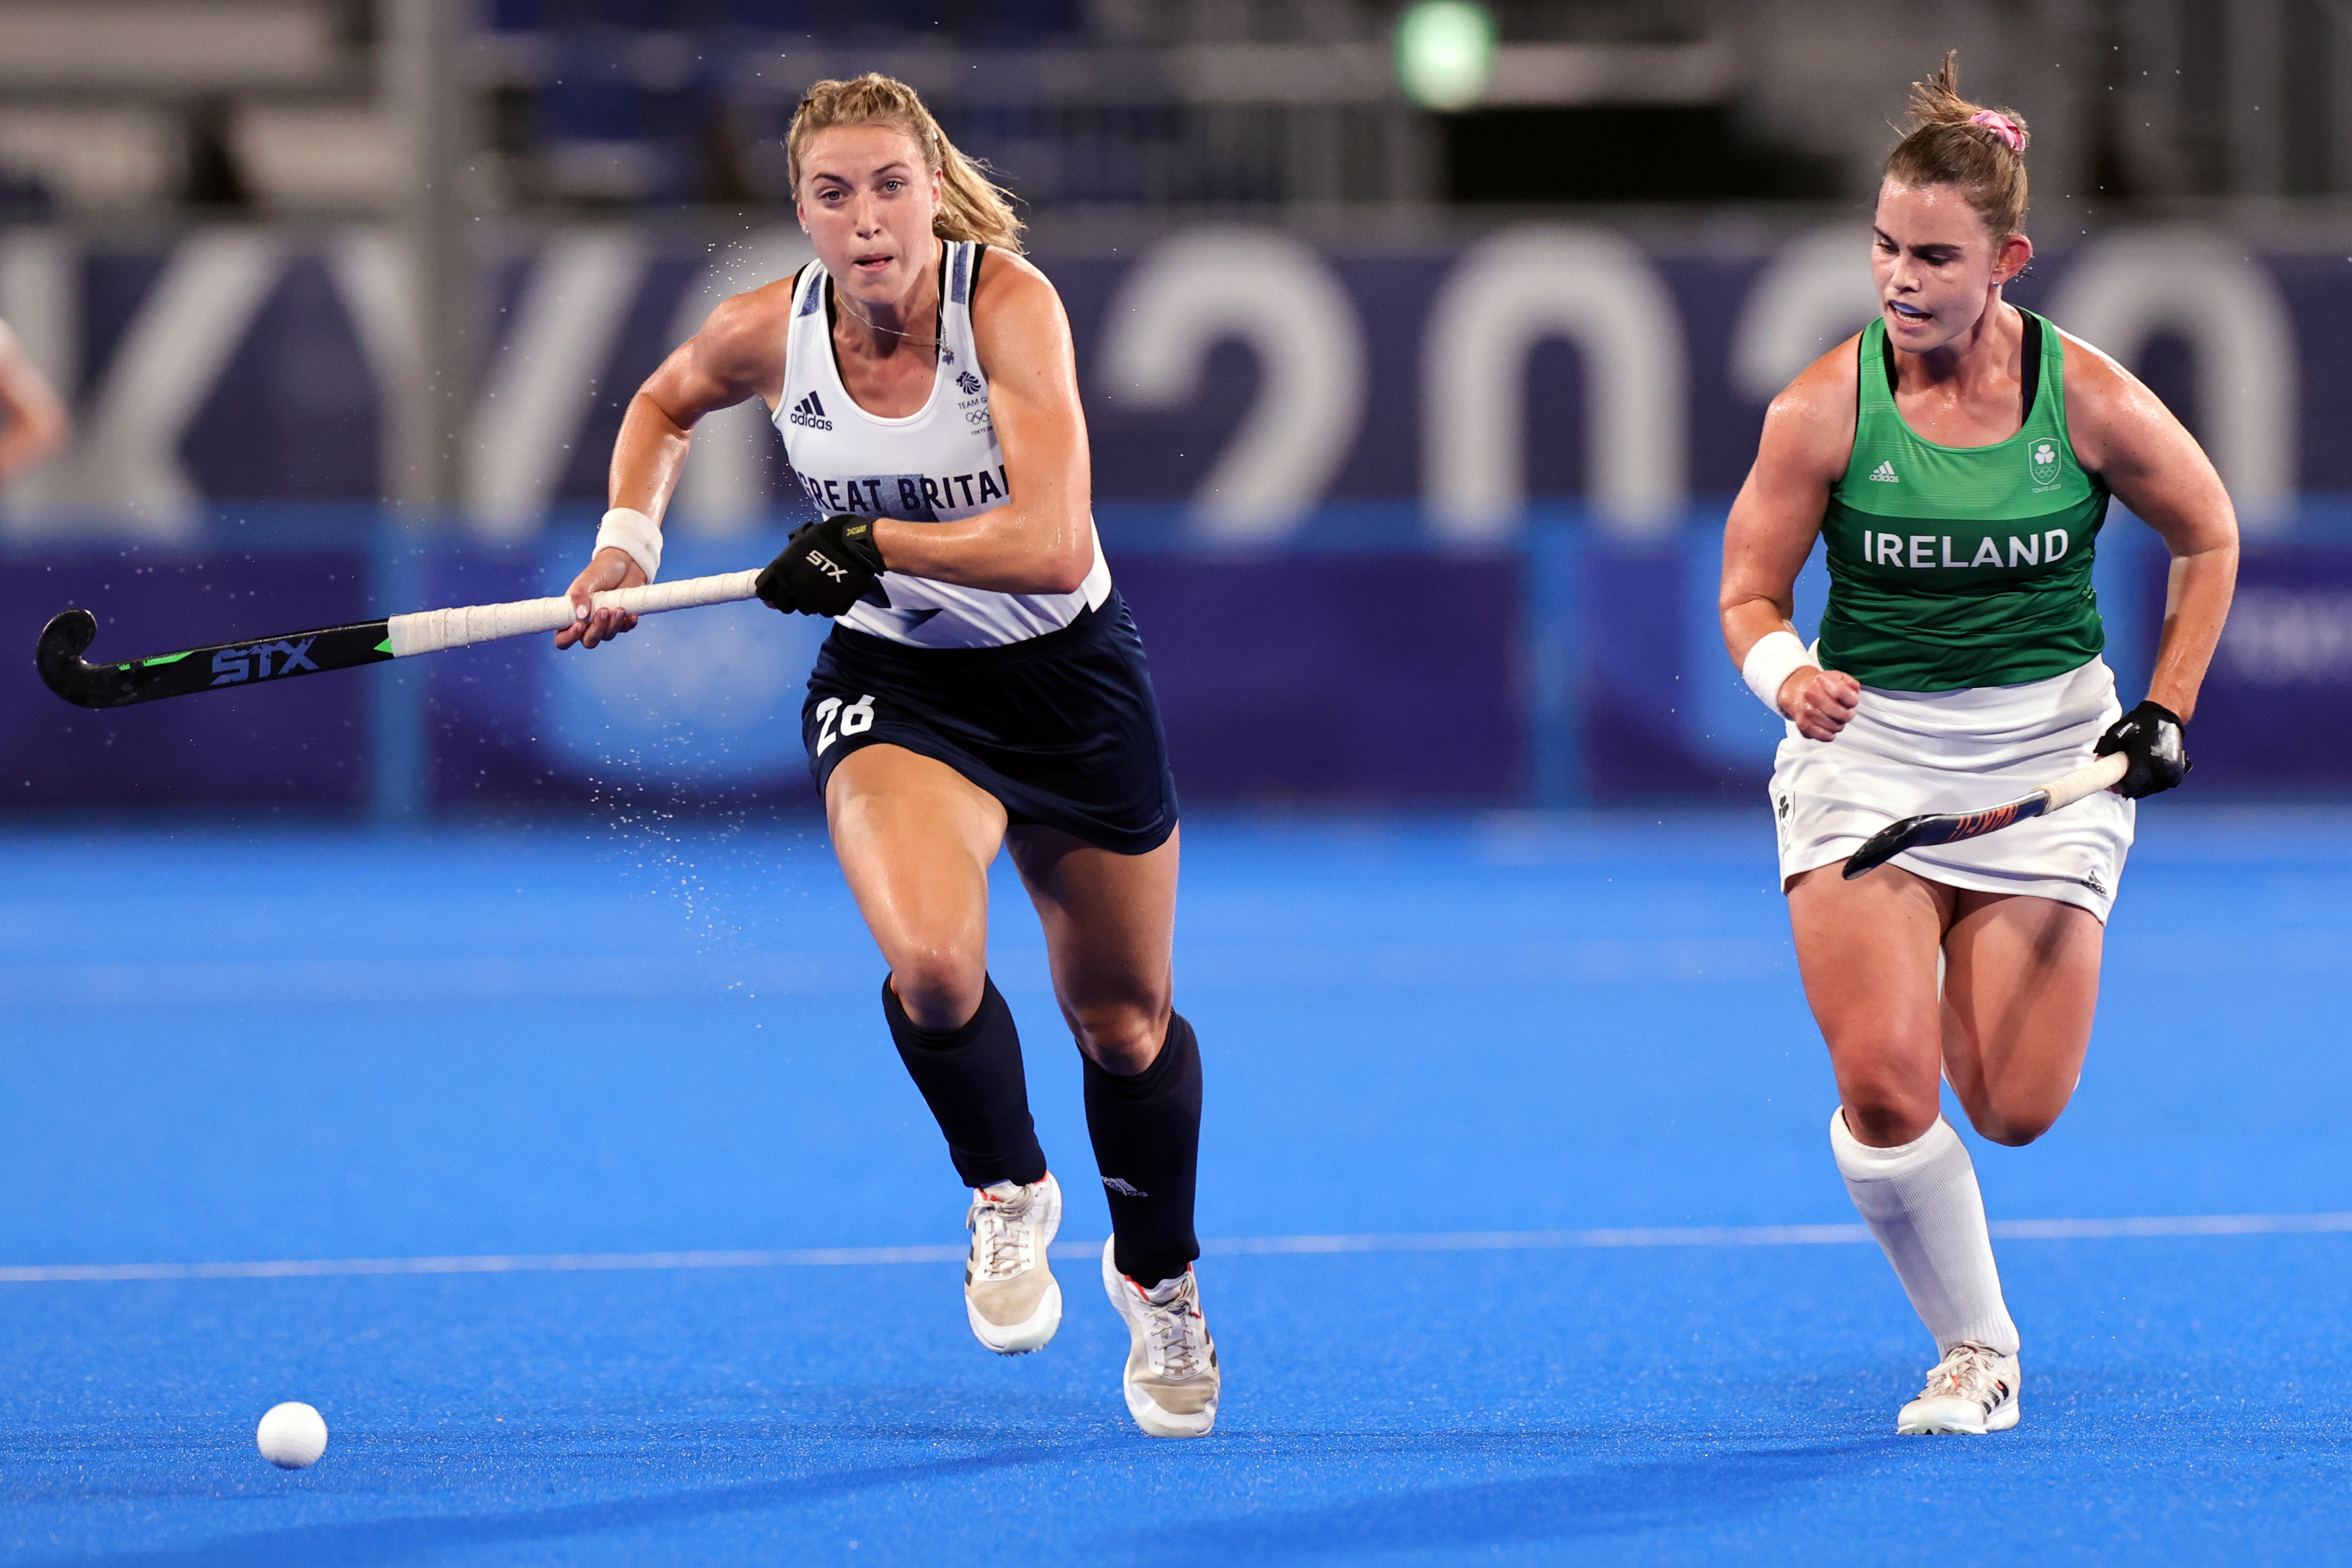 Tokyo 2020 Olympics - Hockey - Women's Pool A - Ireland v Britain - Oi Hockey Stadium, Tokyo, Japan - July 31, 2021. Lily Owsley of Britain in action with Lizzie Holden of Ireland. REUTERS/Ann Wang